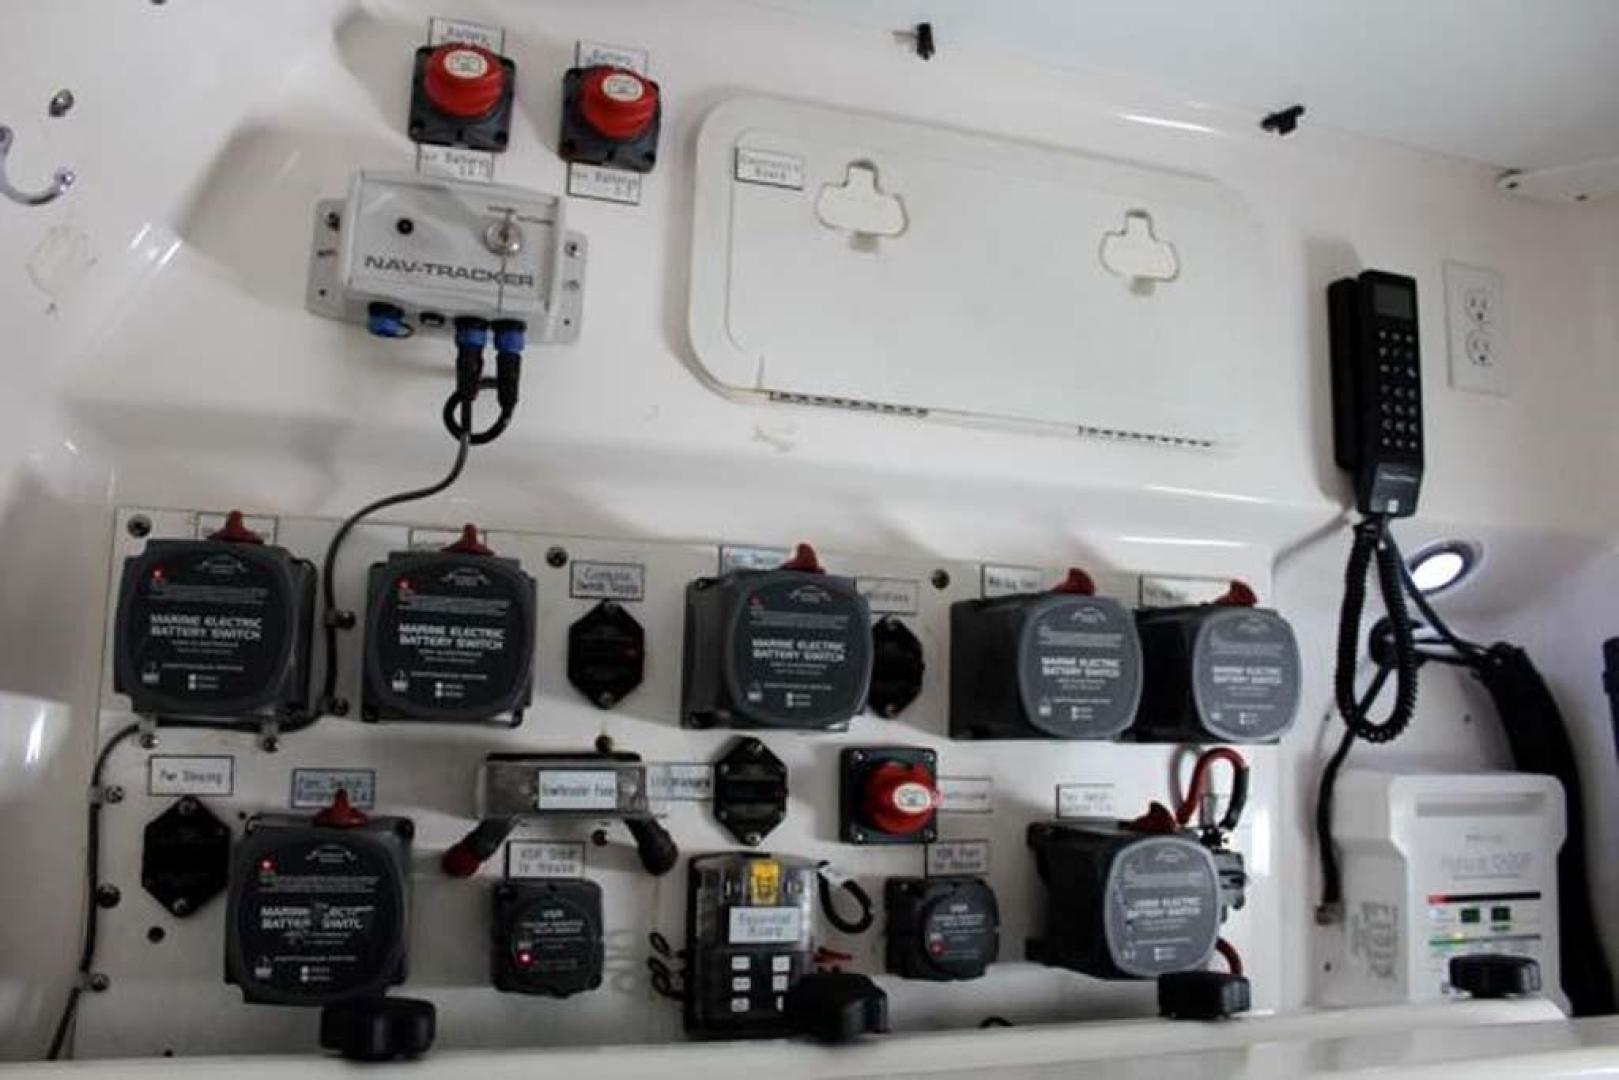 Everglades-35 LX NEW POWER 2010 -Delray Beach-Florida-United States-Battery Switches-923984 | Thumbnail